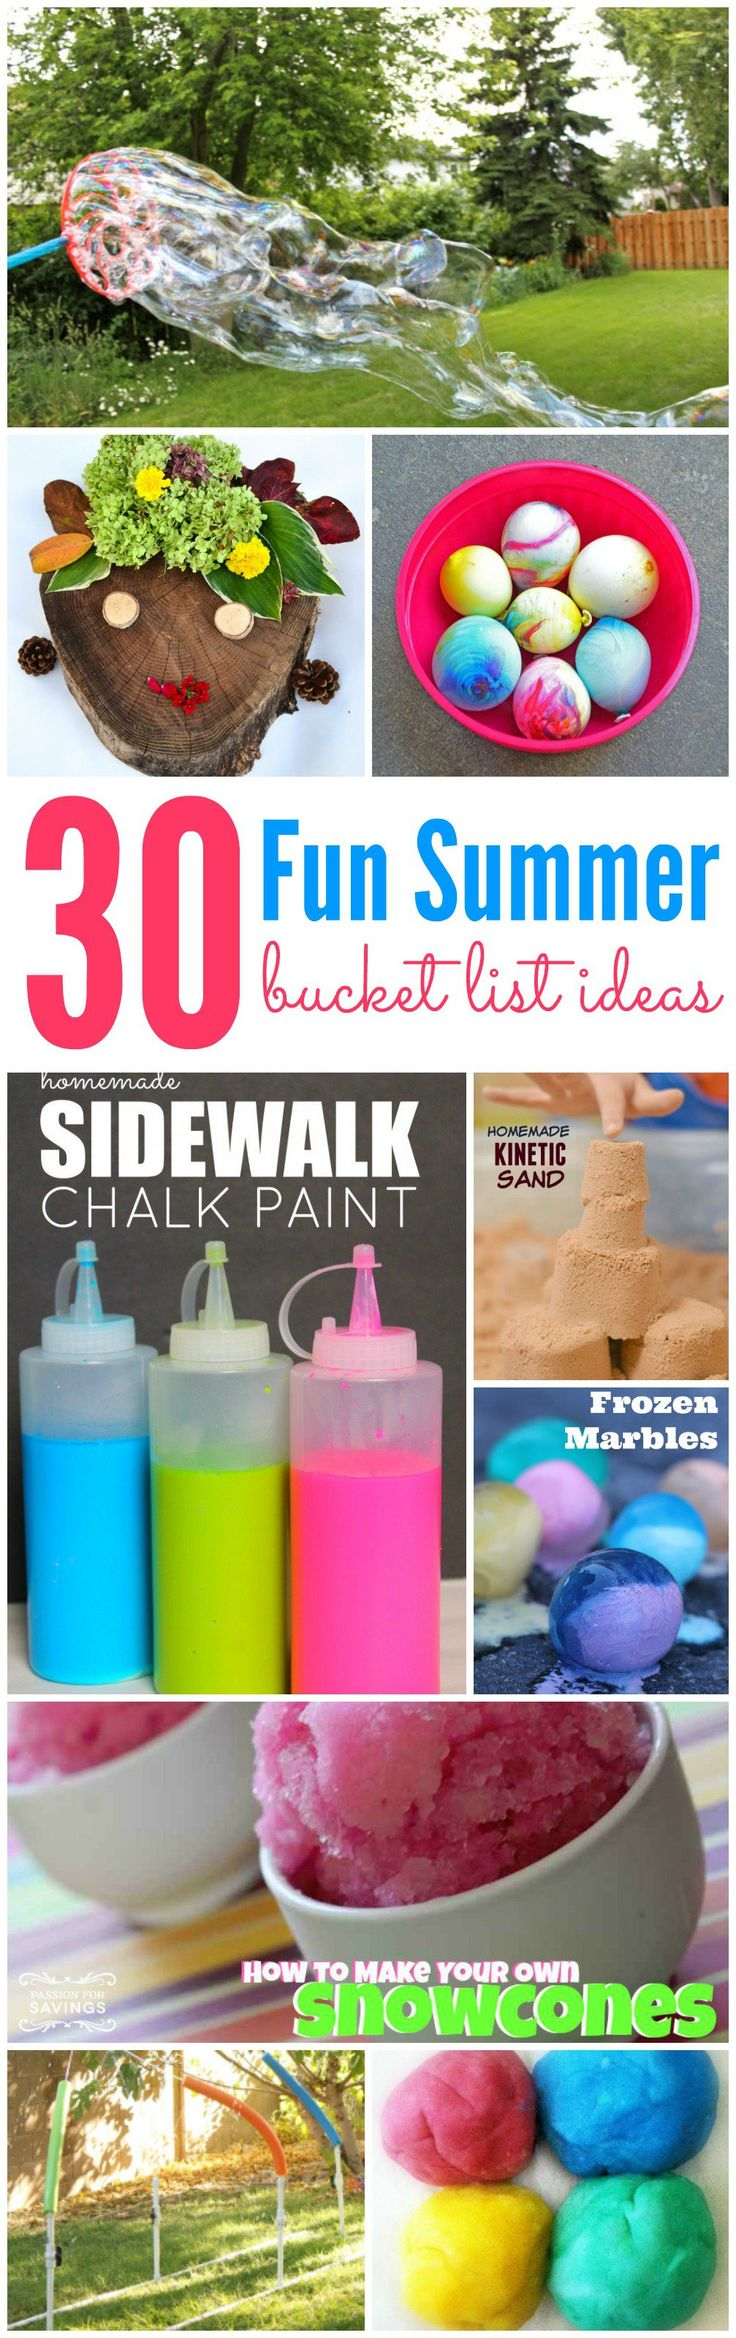 30 fun ideas for your family's summer bucket list! Great activities for all ages!